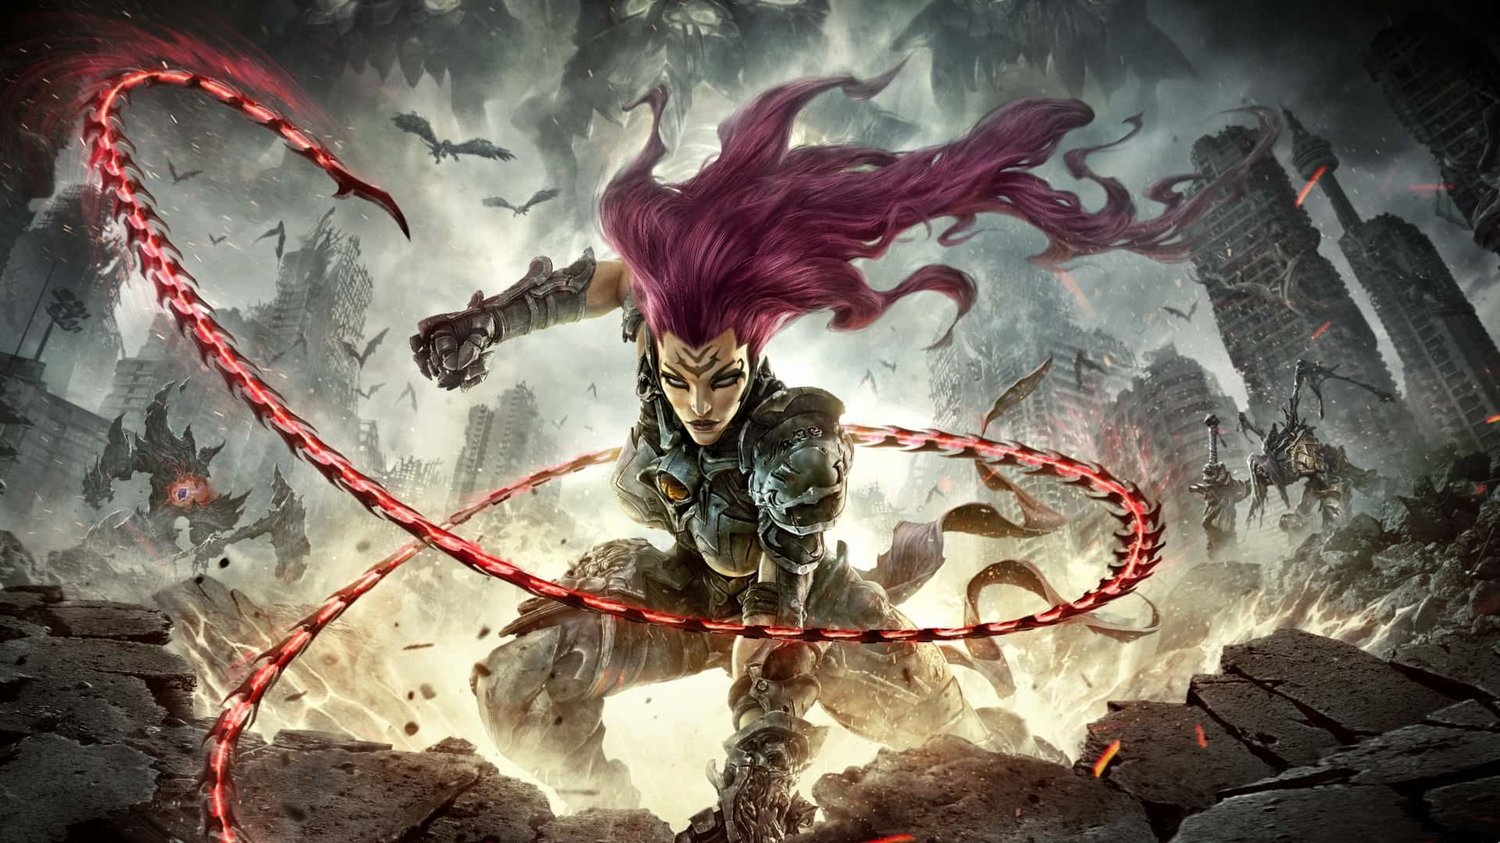 darksiders 2 deathinitive edition ps4 metacritic